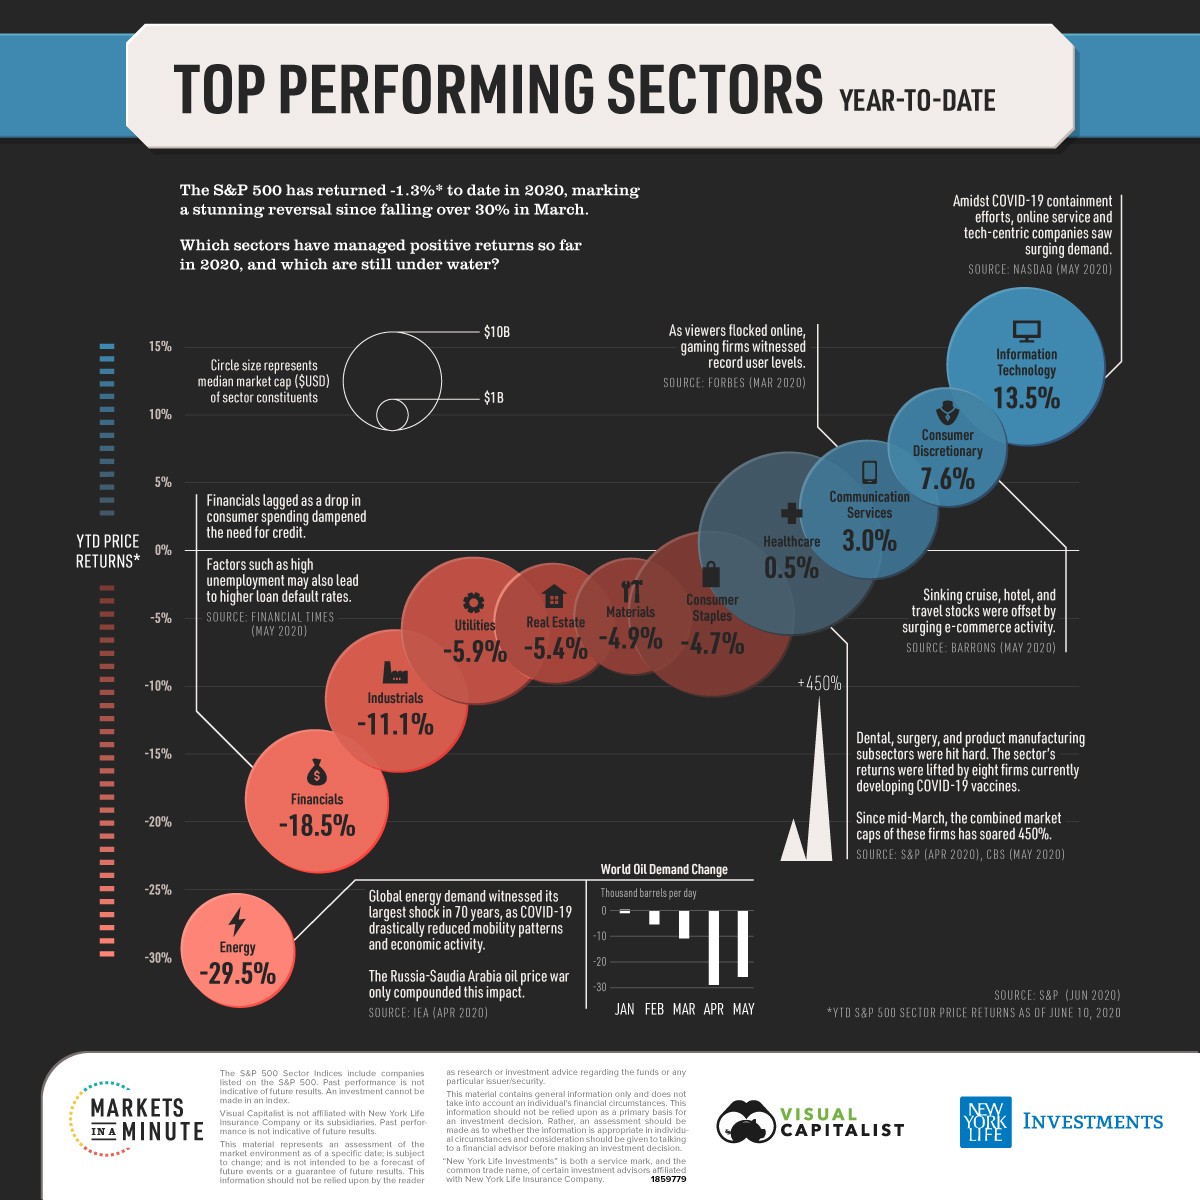 Top performing sectors, year-to-date